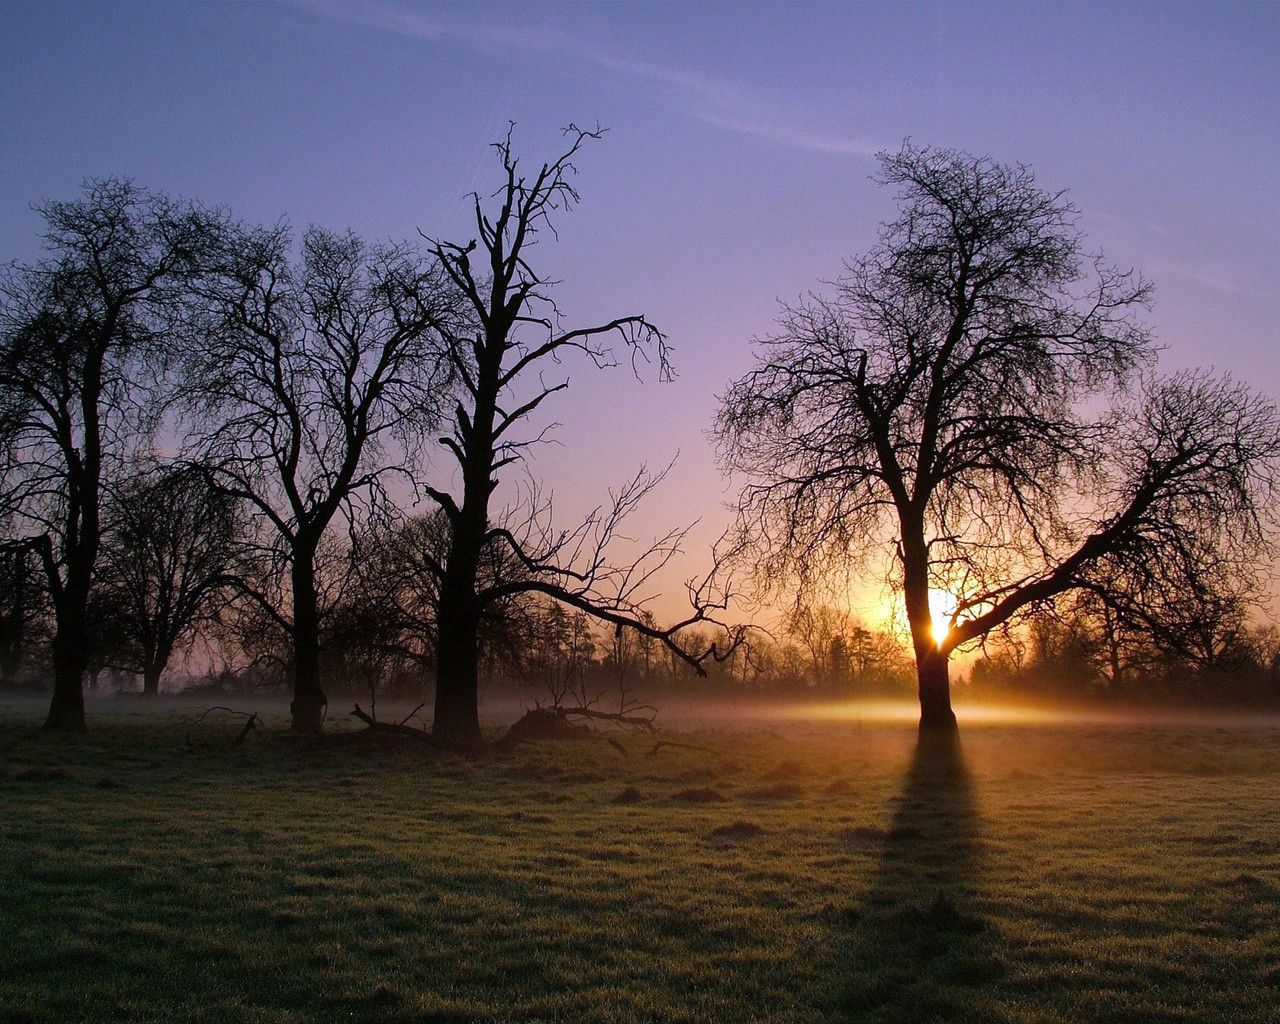 60307 download wallpaper Nature, Trees, Sun Rays, Sunlight, Shine, Light, Morning, Fog, Cool, Coolness screensavers and pictures for free